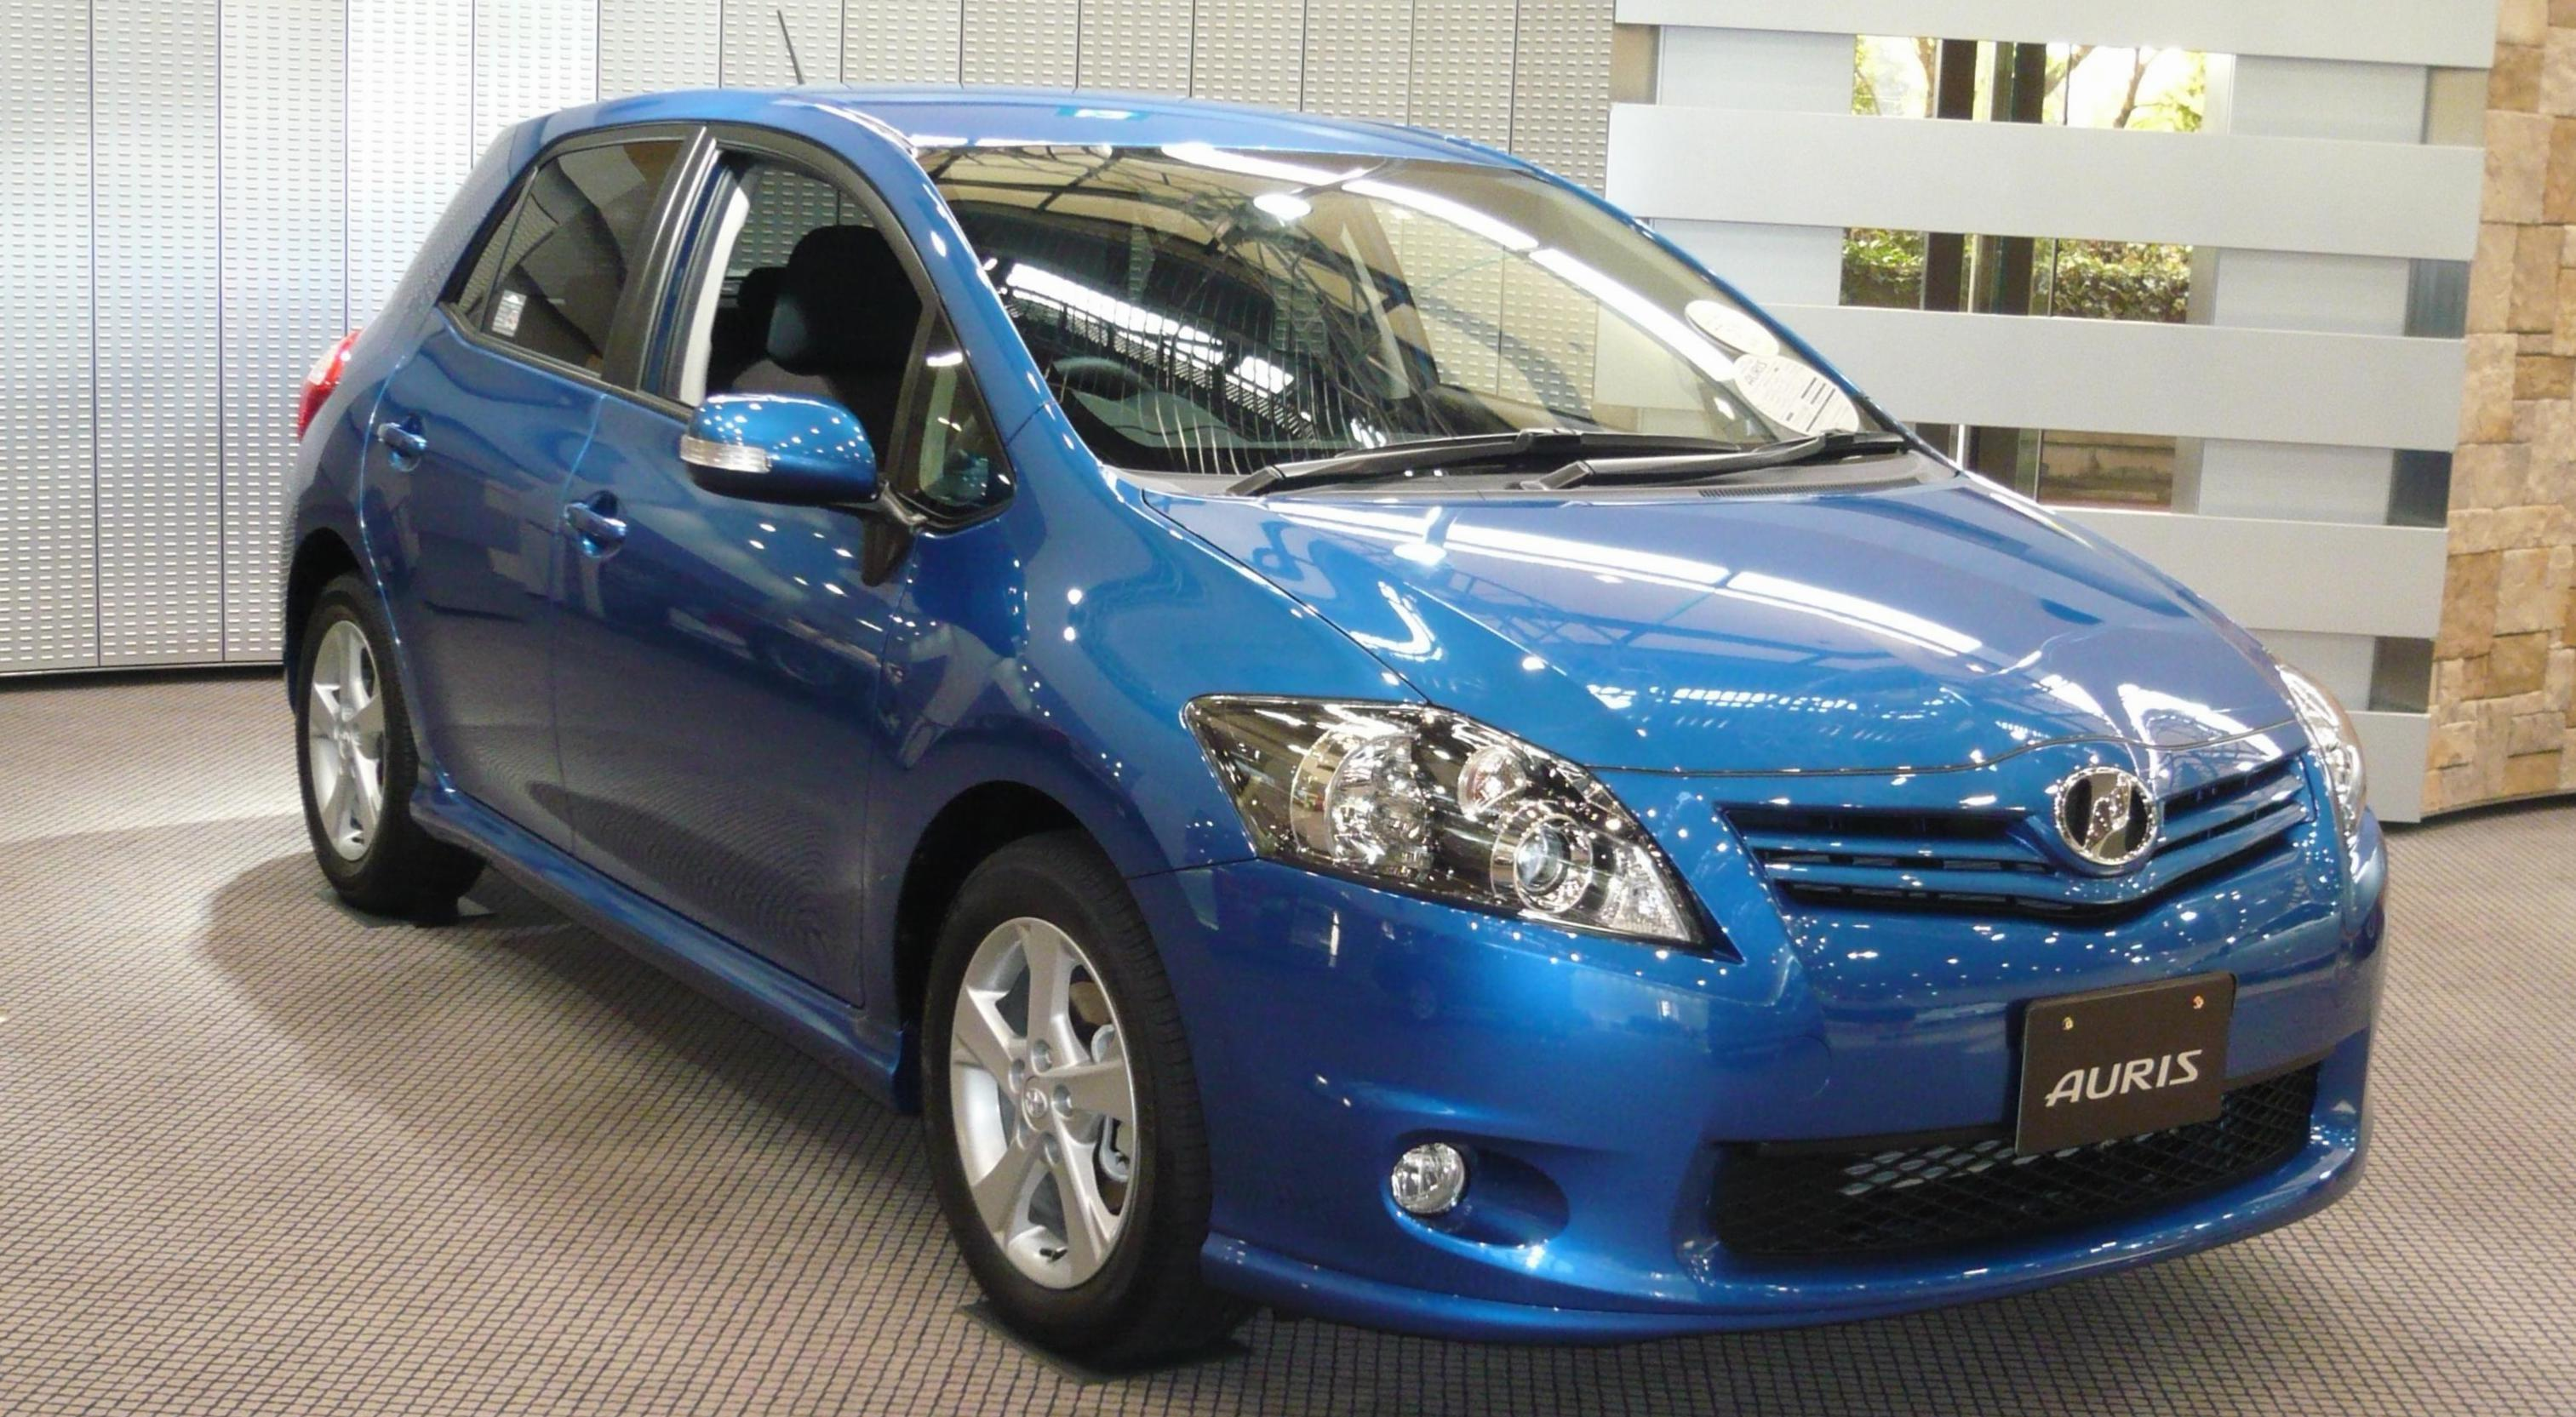 Toyota Auris parts hatchback